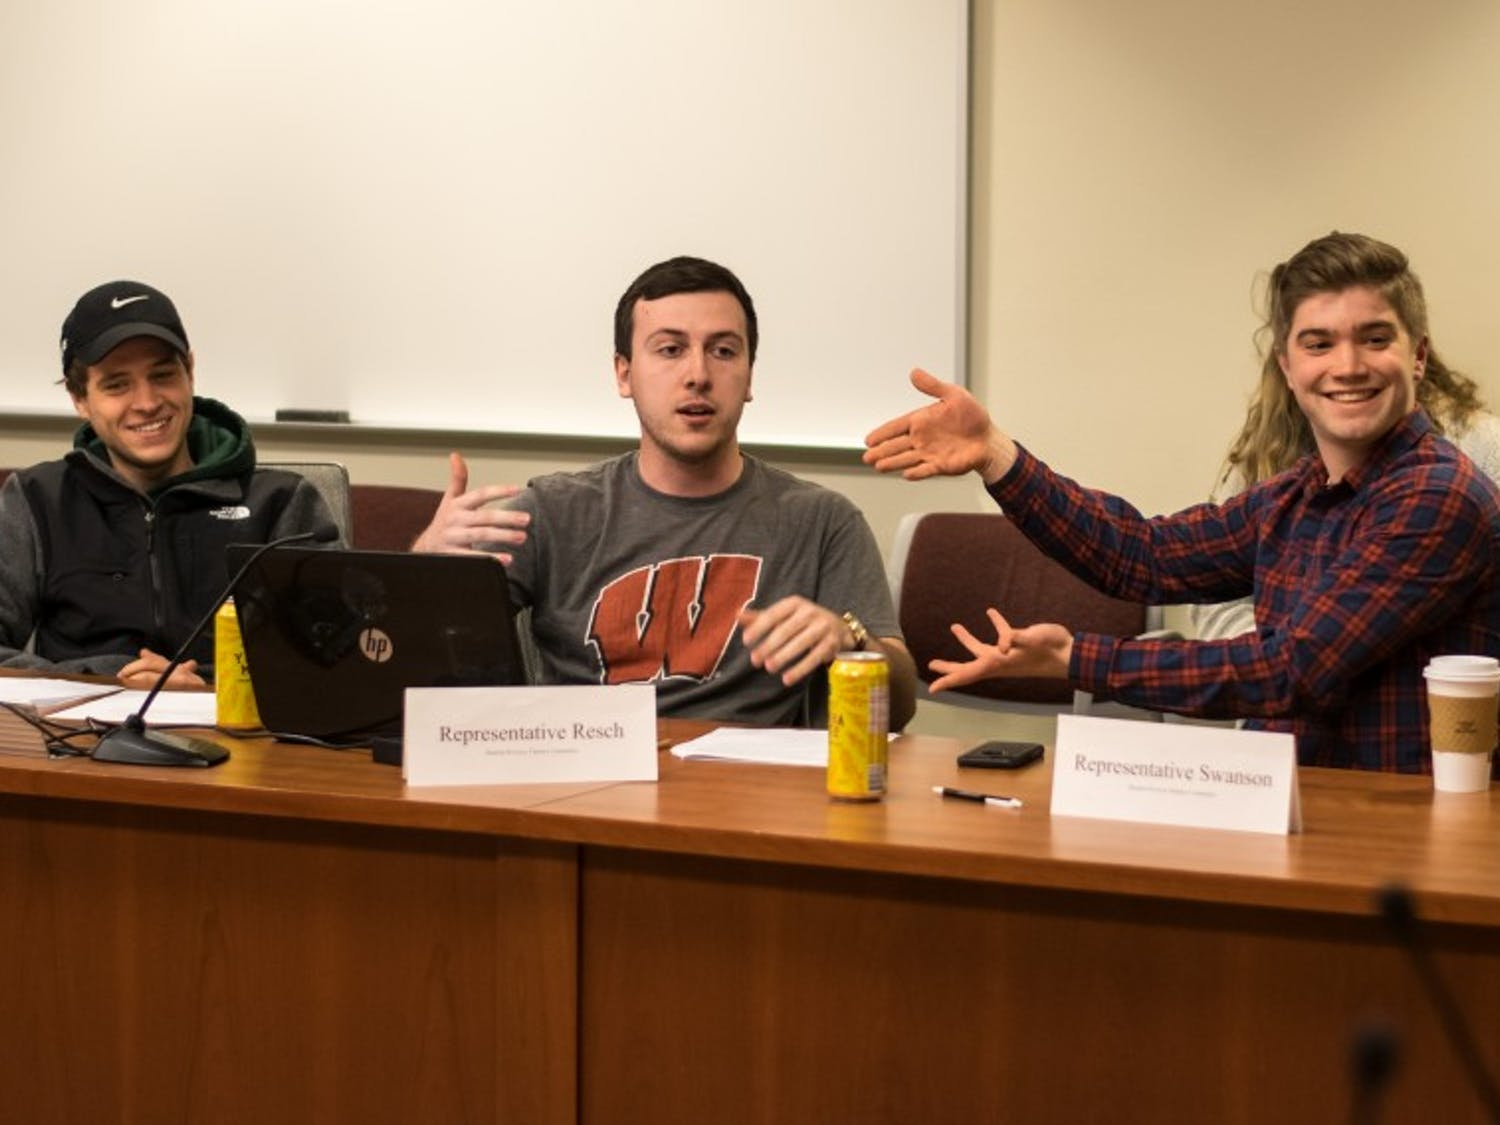 After impeachment hearings, student finance committee member advocates for excused absence policy